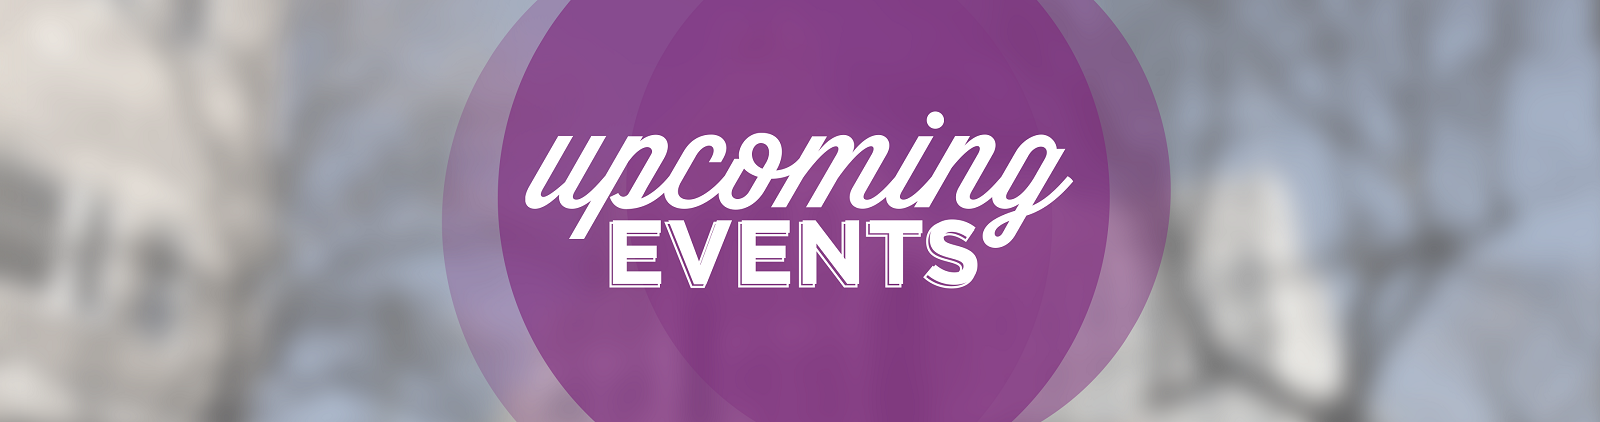 http://daniellaholistic.com/wp-content/uploads/2014/11/Upcoming_Events-Banner.png